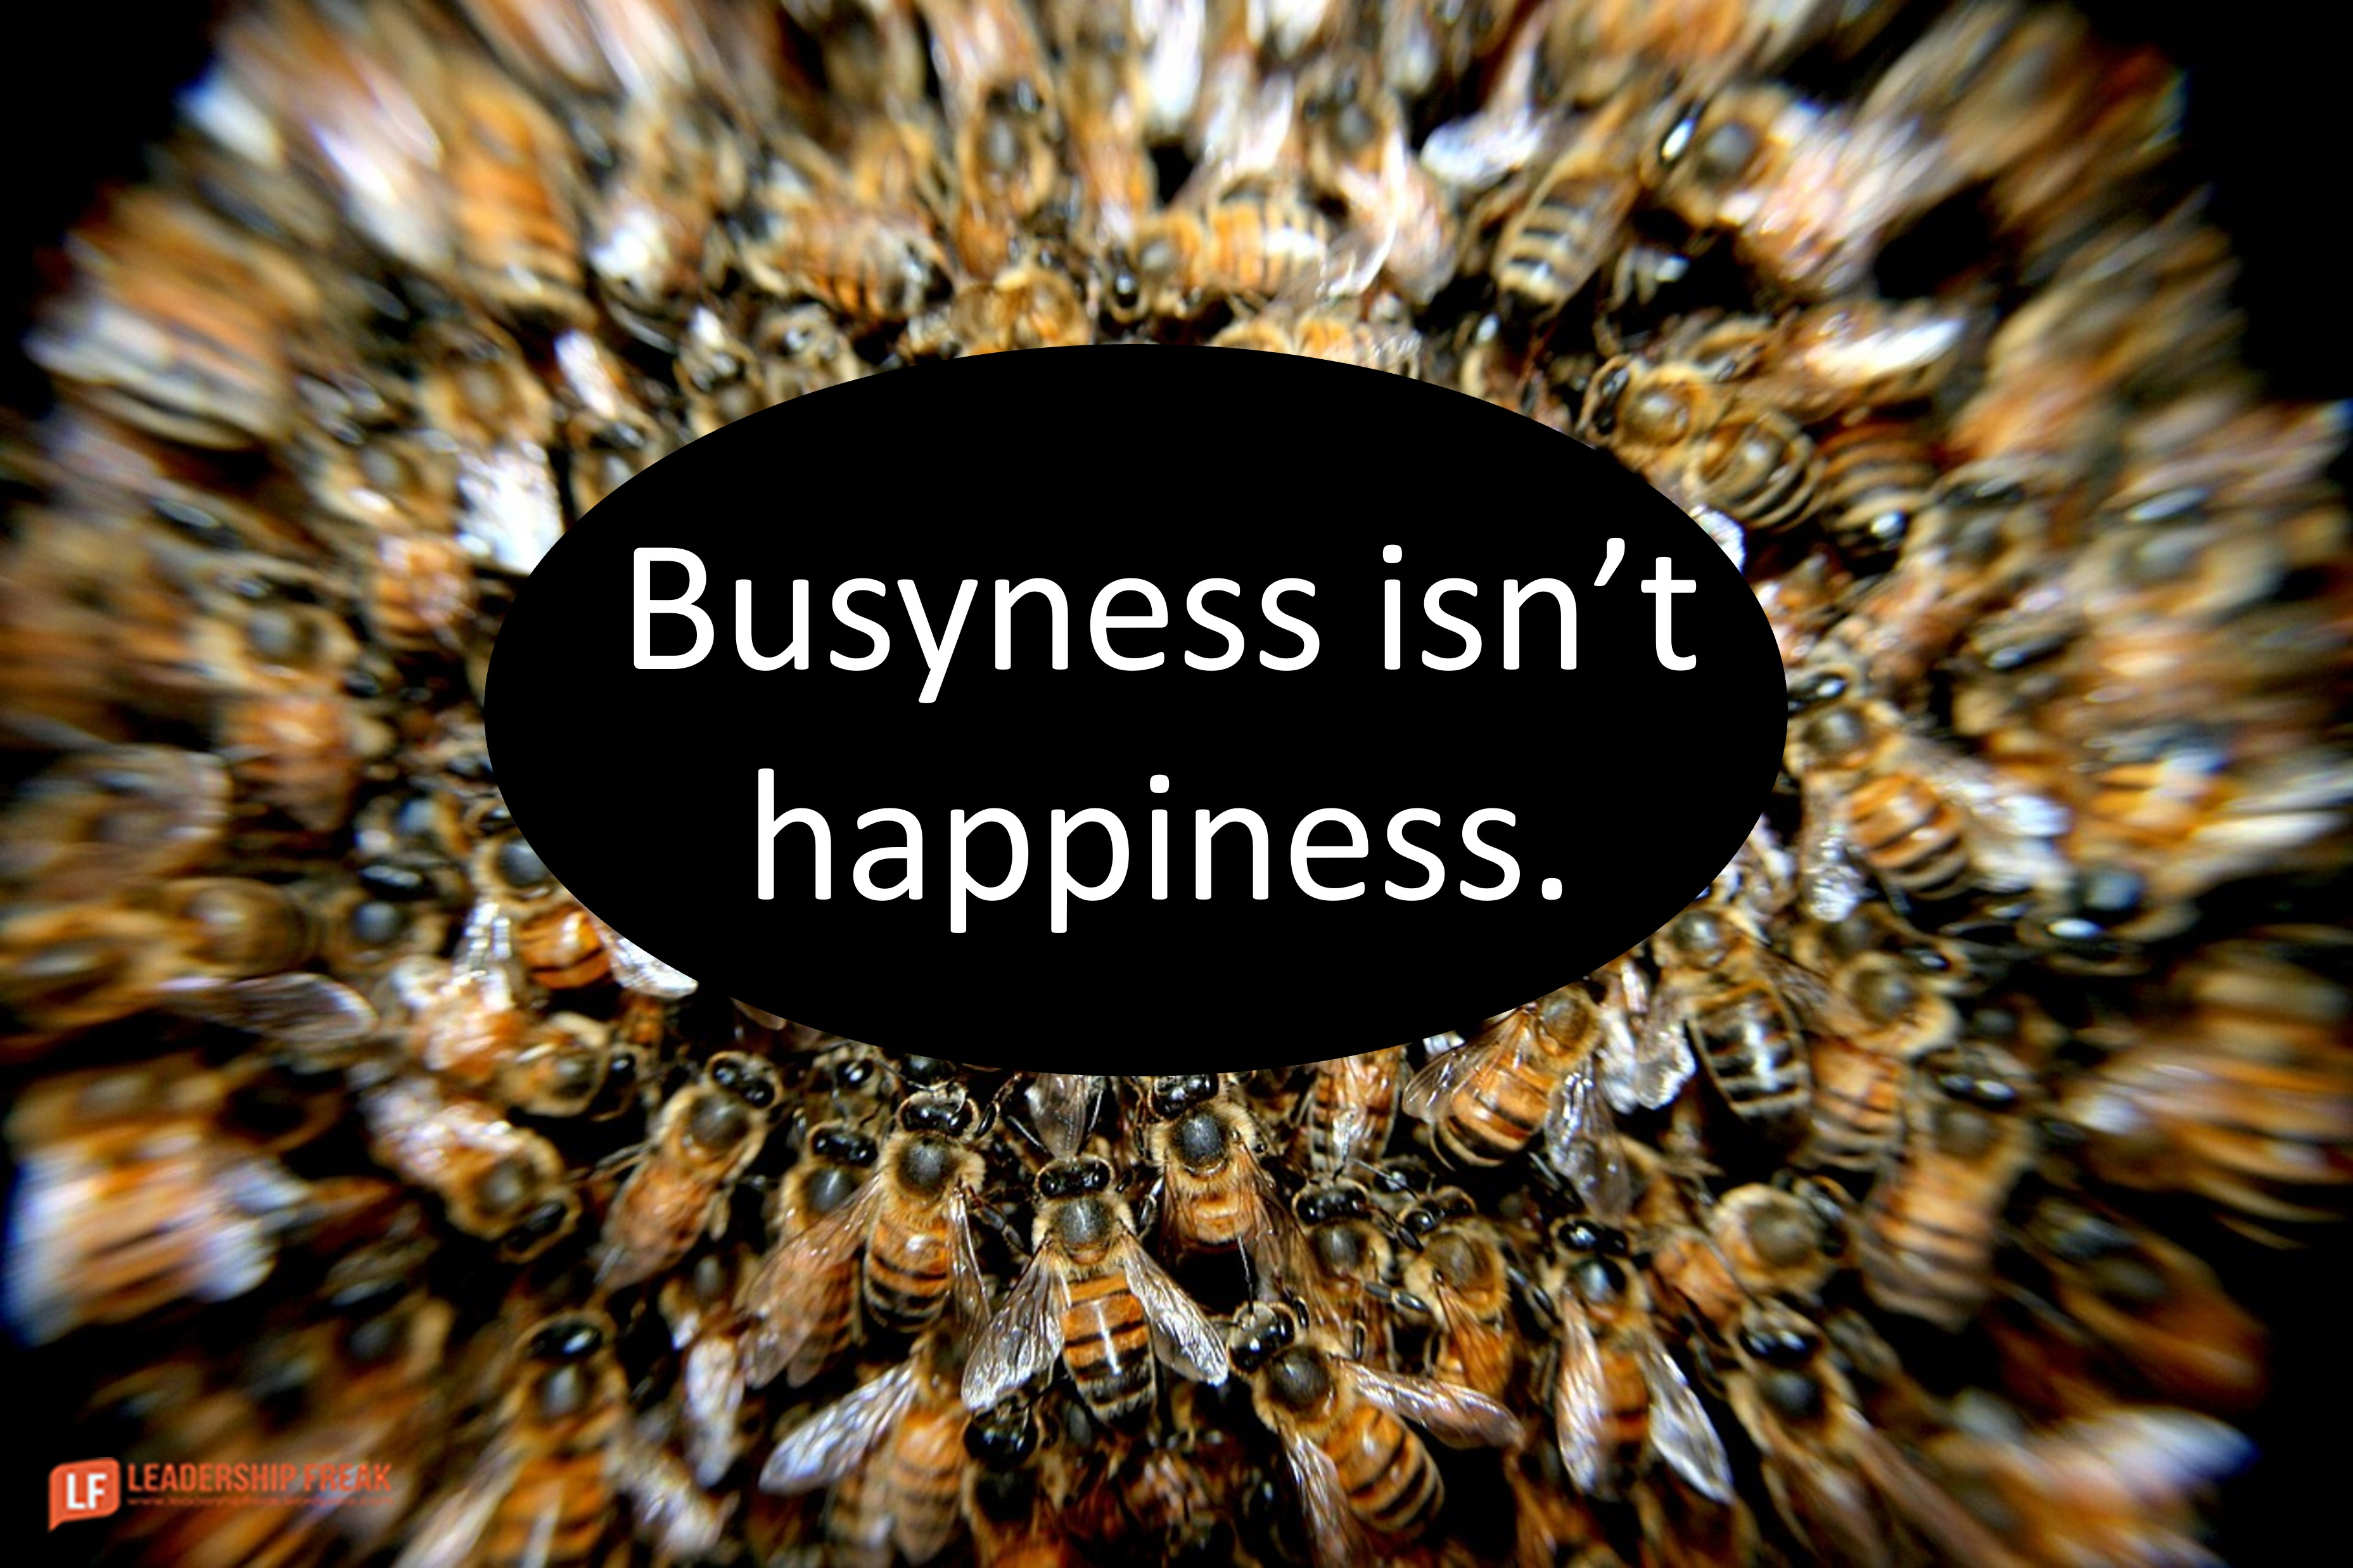 Busy bees  Busyness isn't happiness